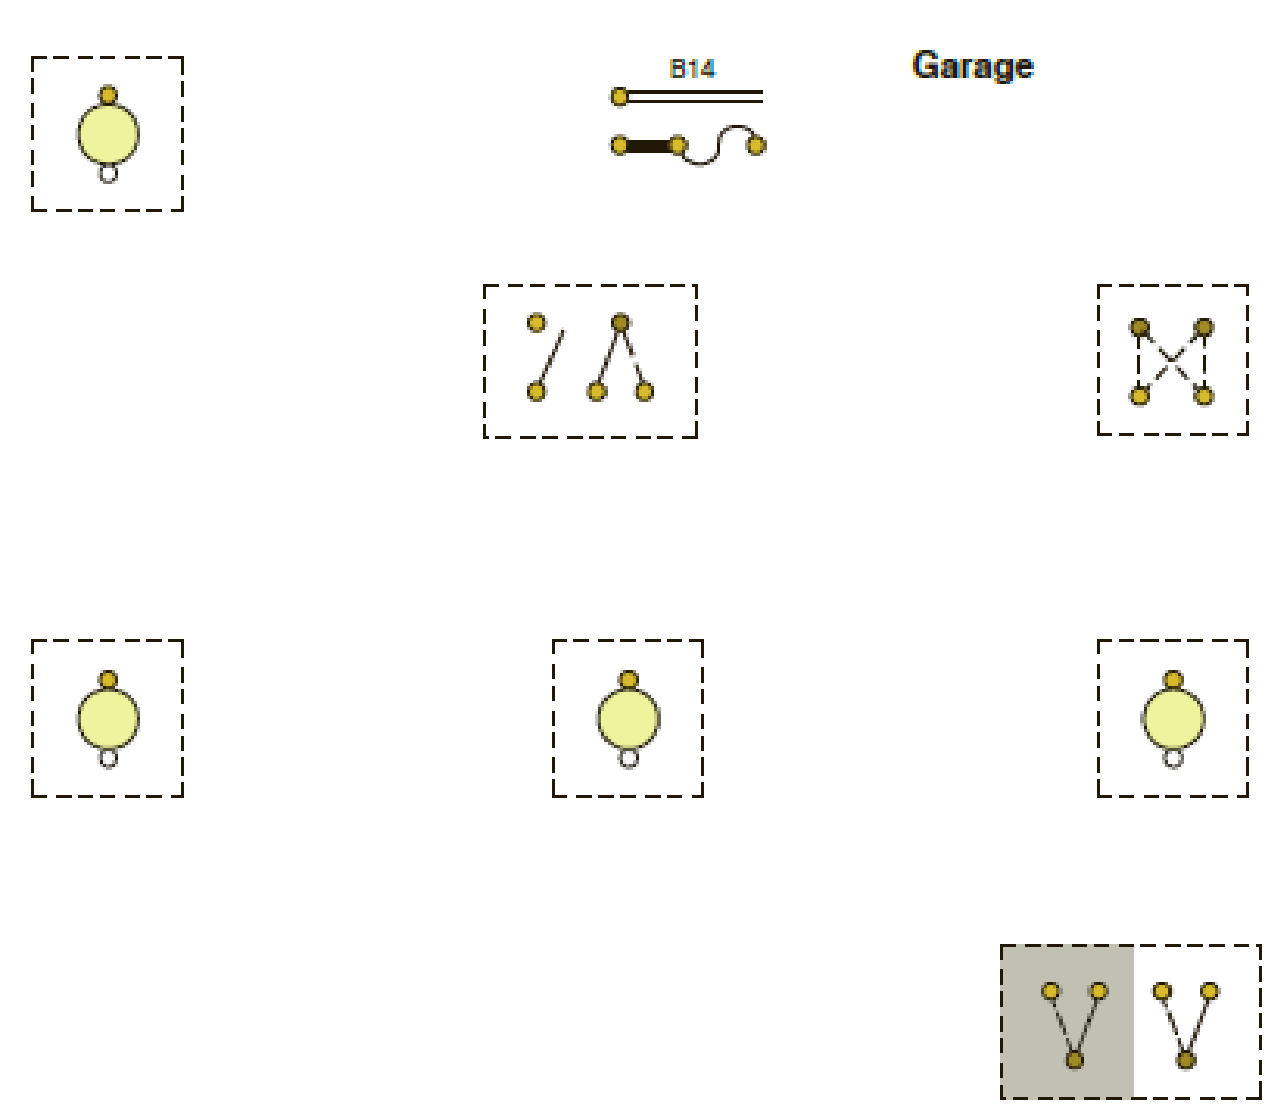 hight resolution of the receptacles in the garage are not shown in this diagram because they are connected to circuit b23